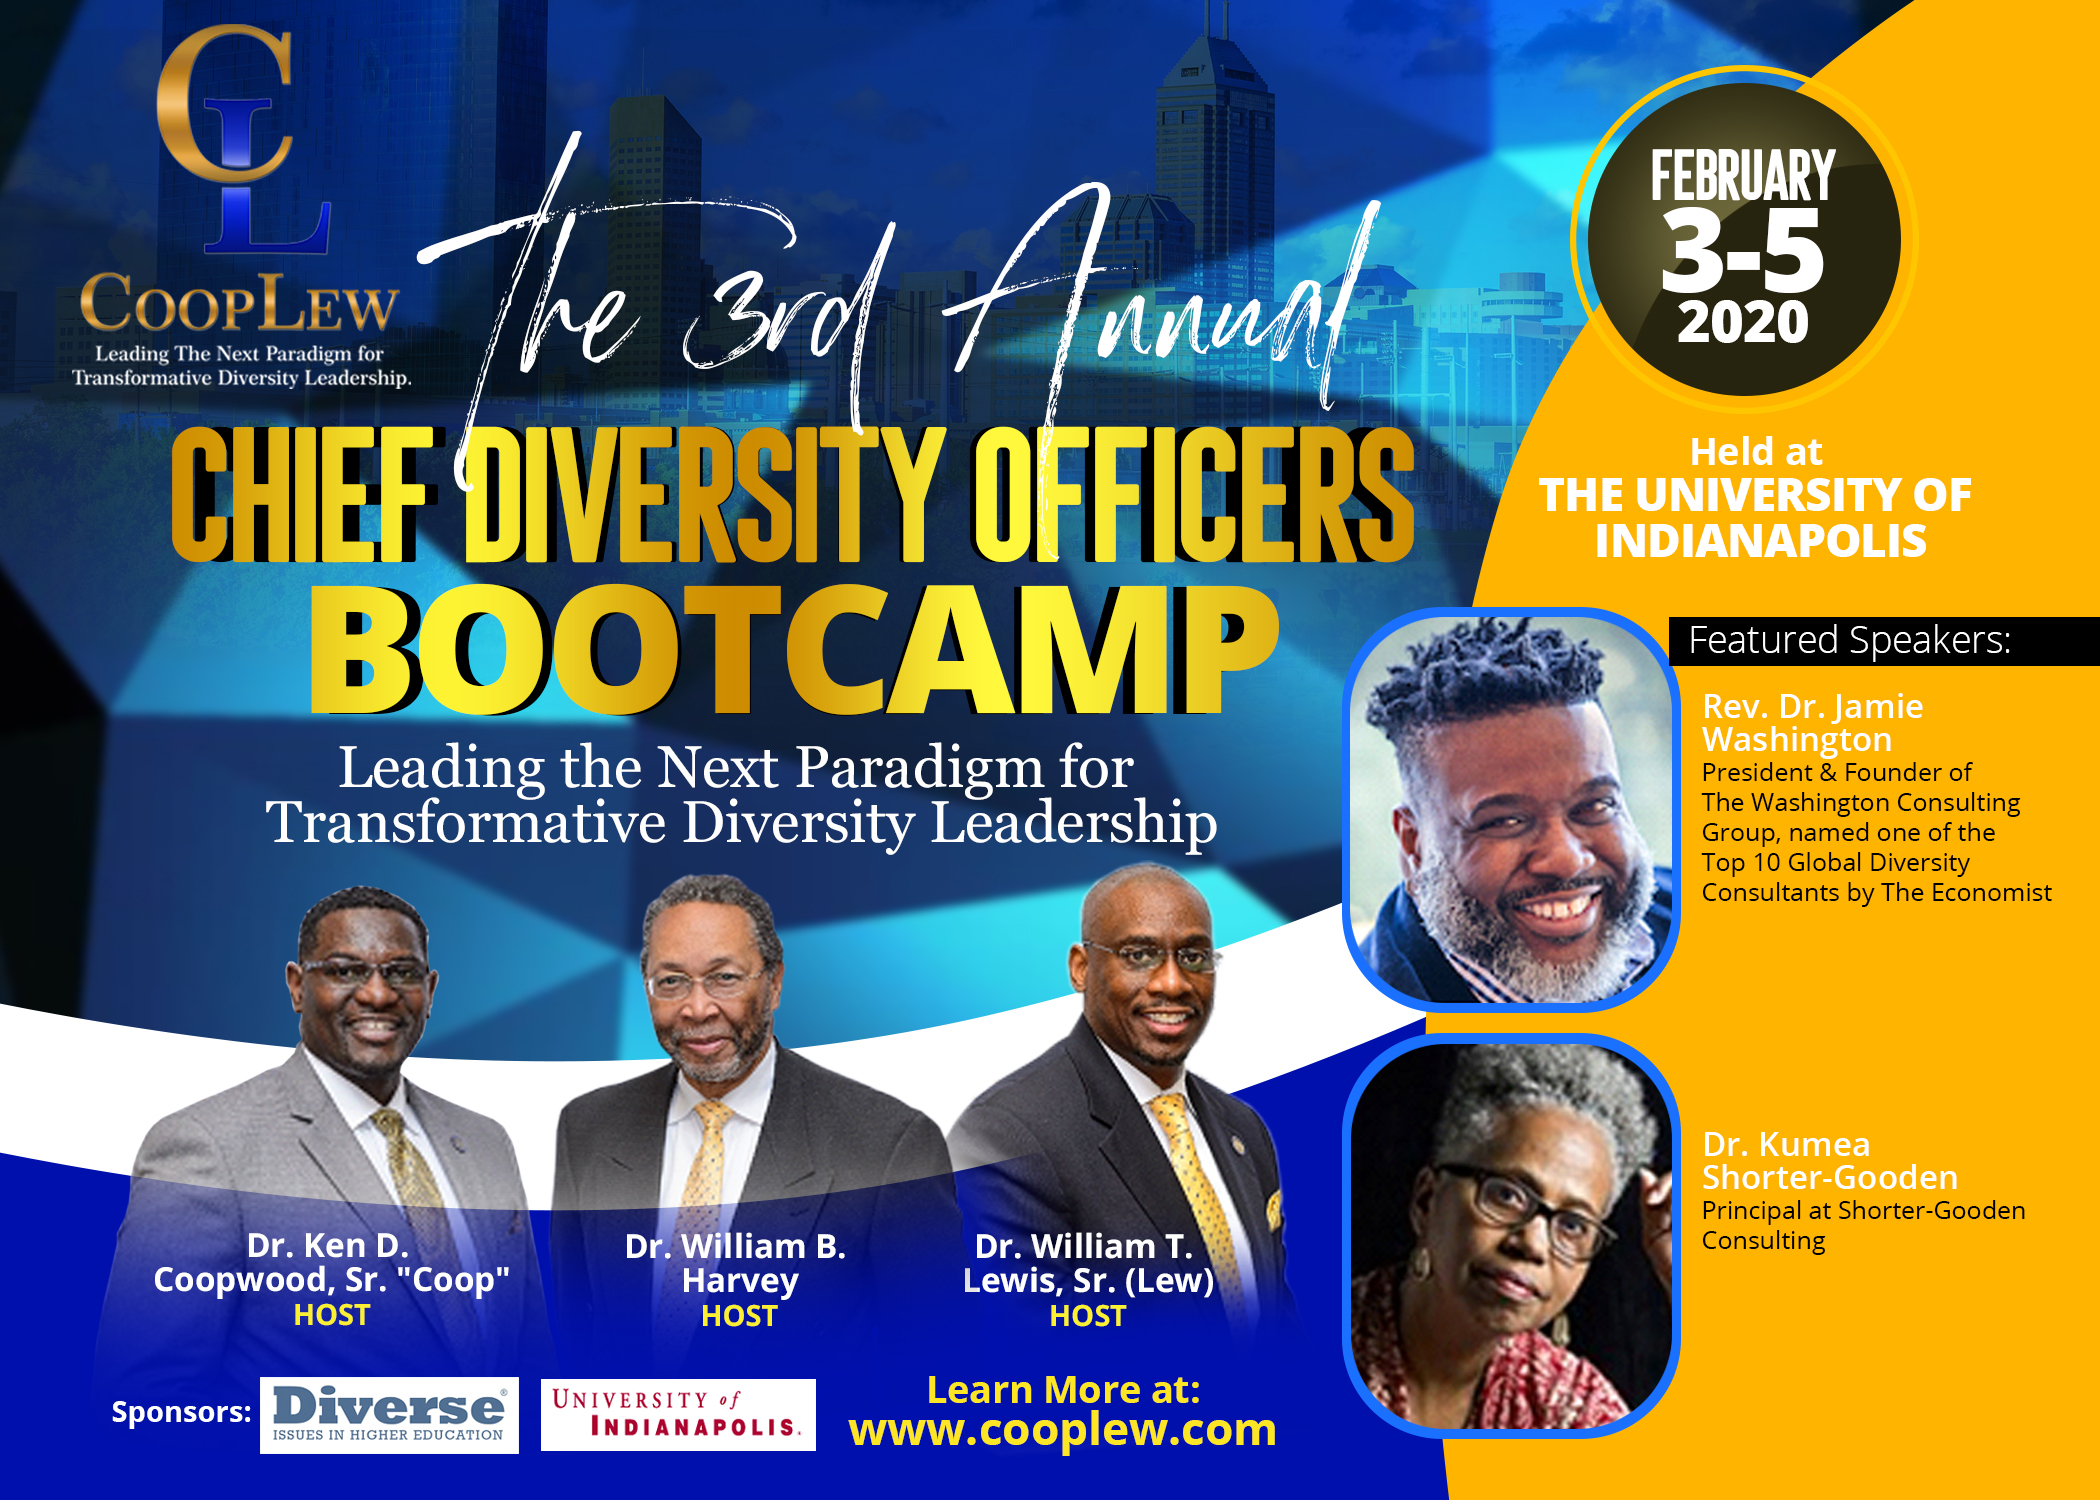 FINALv5 The 3rd Annual Chief Diversity Officers Bootcamp.jpg